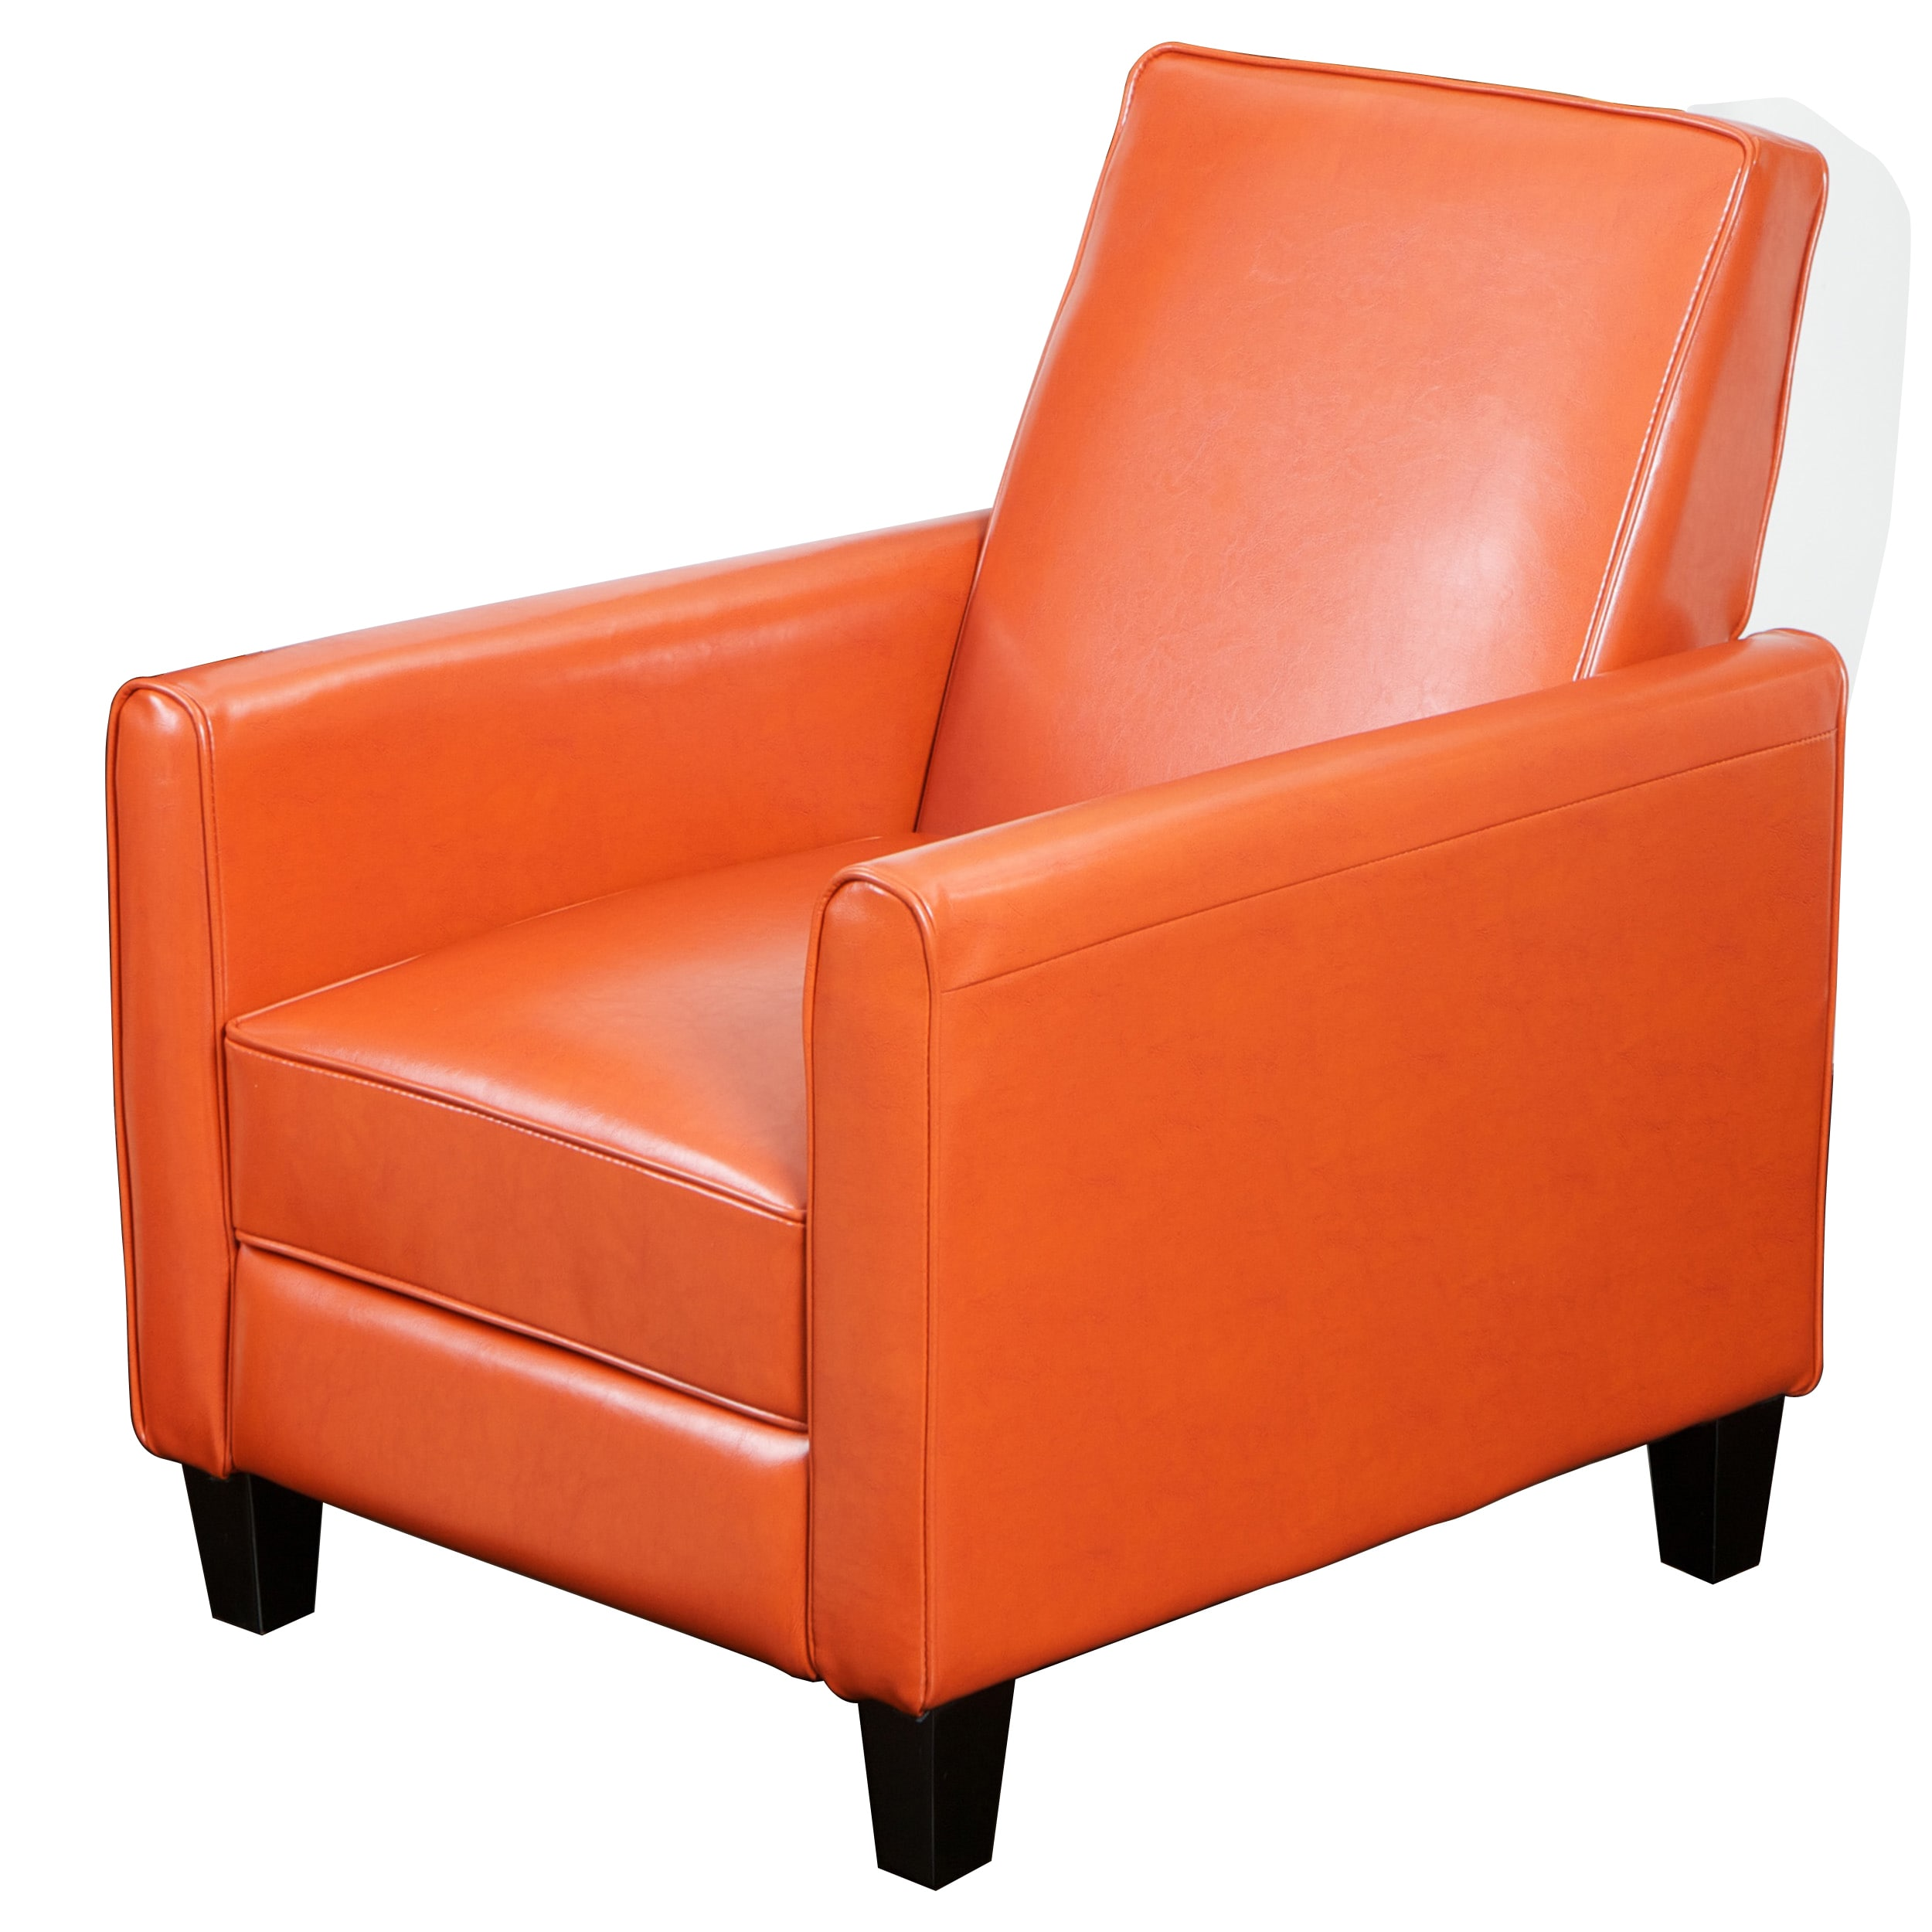 darvis orange bonded leather recliner club chair by christopher knight home free shipping today  overstockcom  . darvis orange bonded leather recliner club chair by christopher